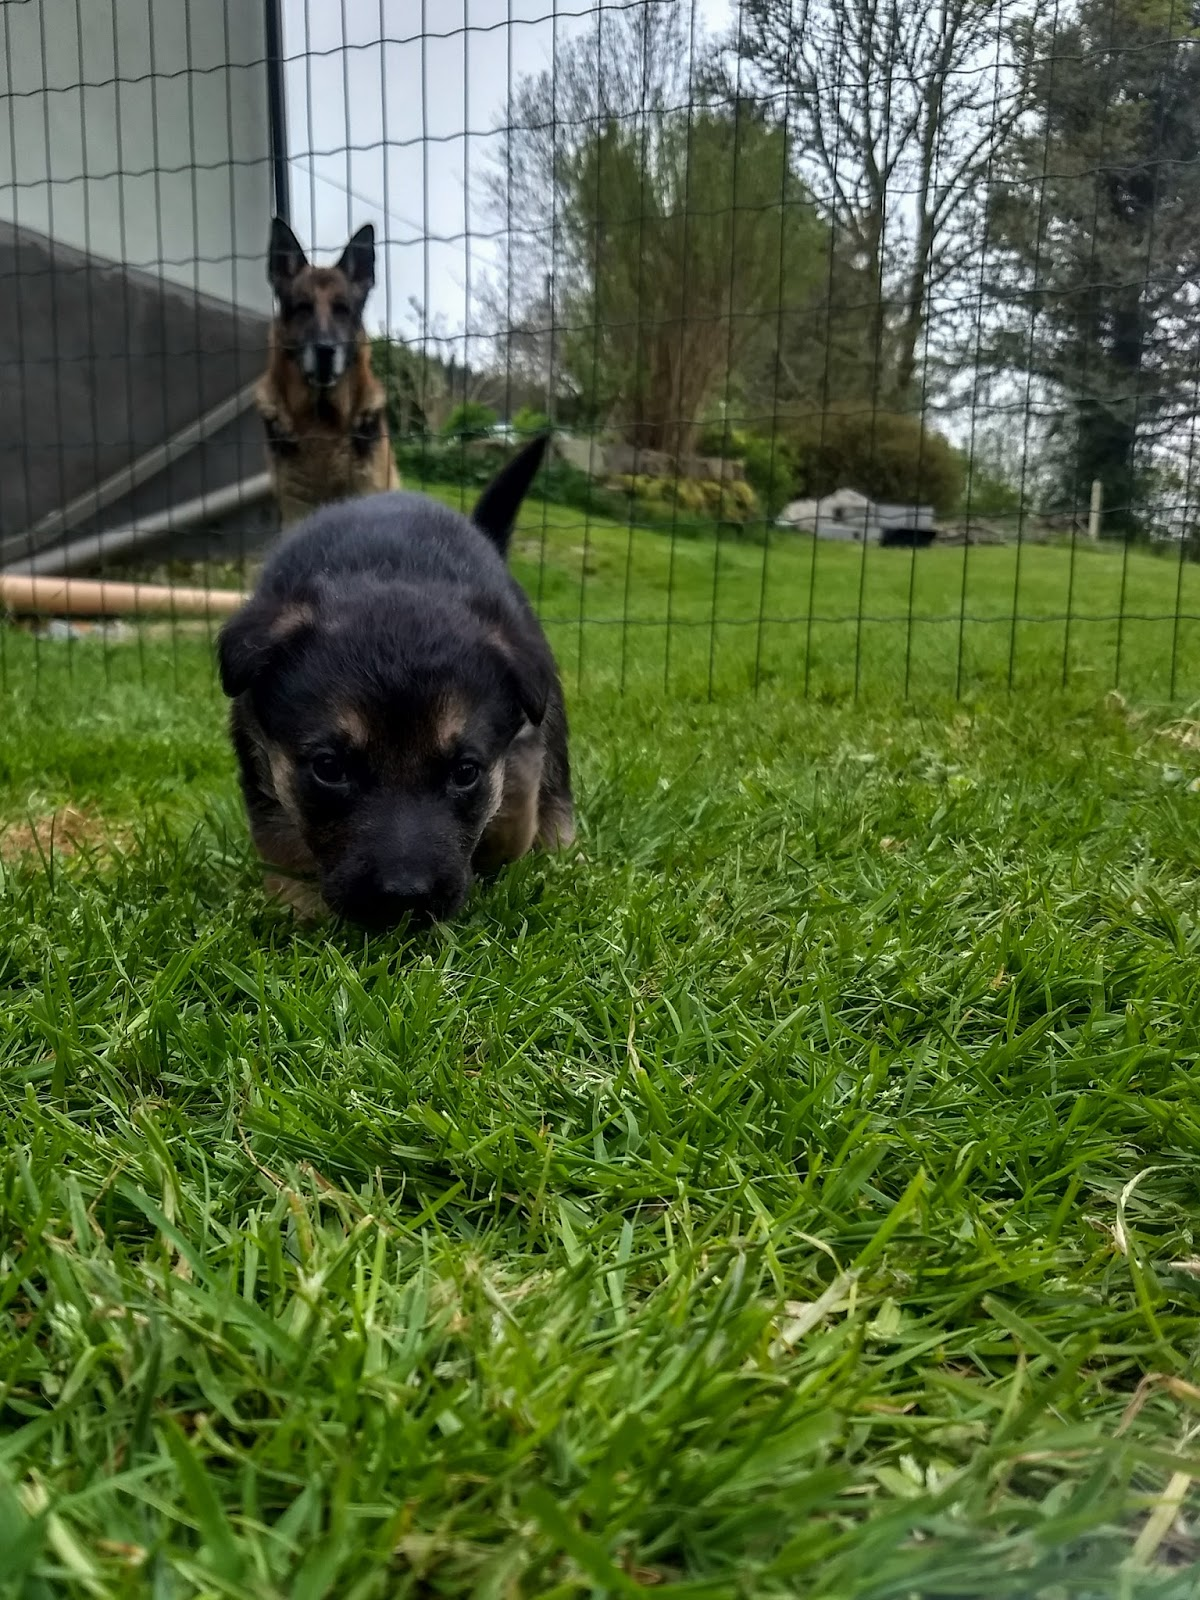 Month old German Shepherd puppy running towards the camera with dad in the background watching.